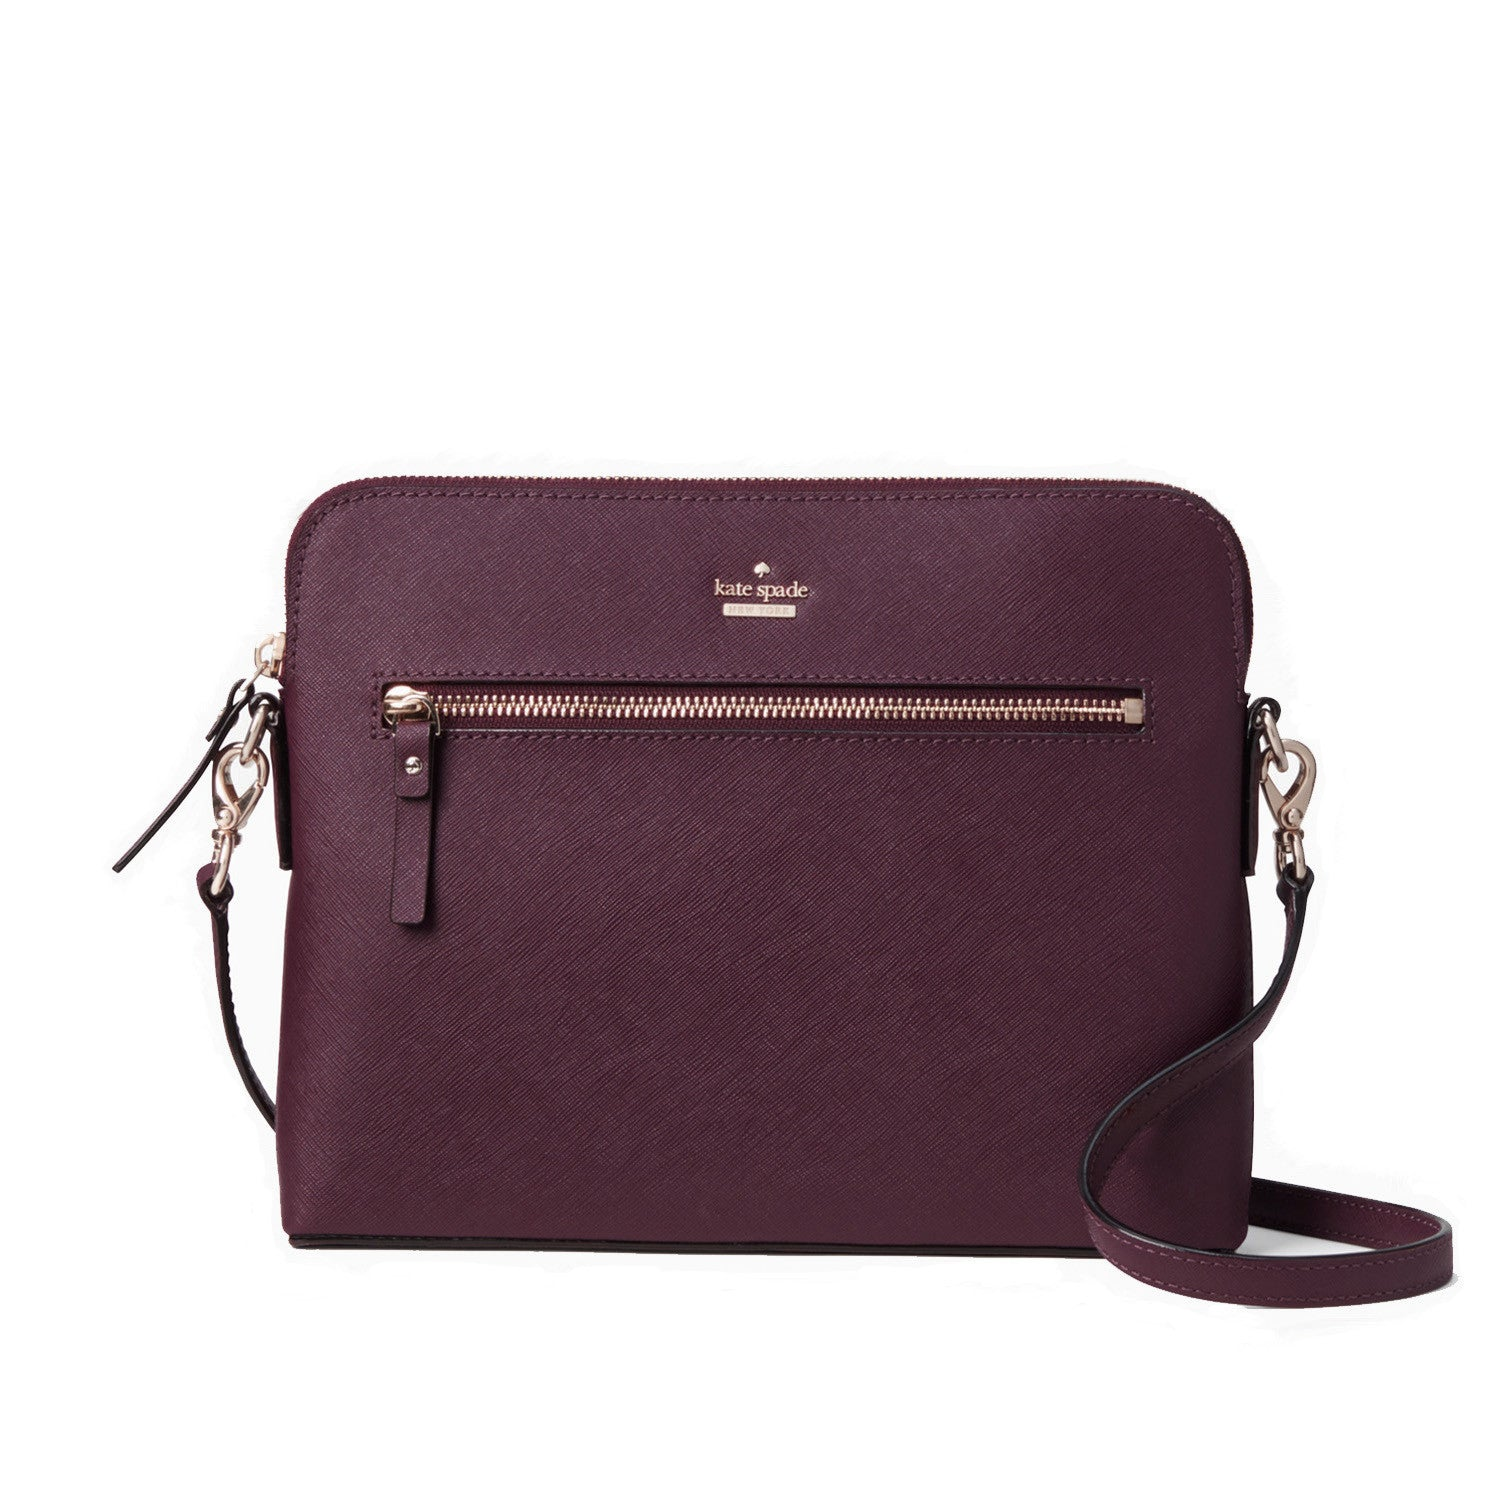 a35023793d45 ... Everpurse Kate Spade Zana Maroon Crossbody Bag that Charges Phone ...